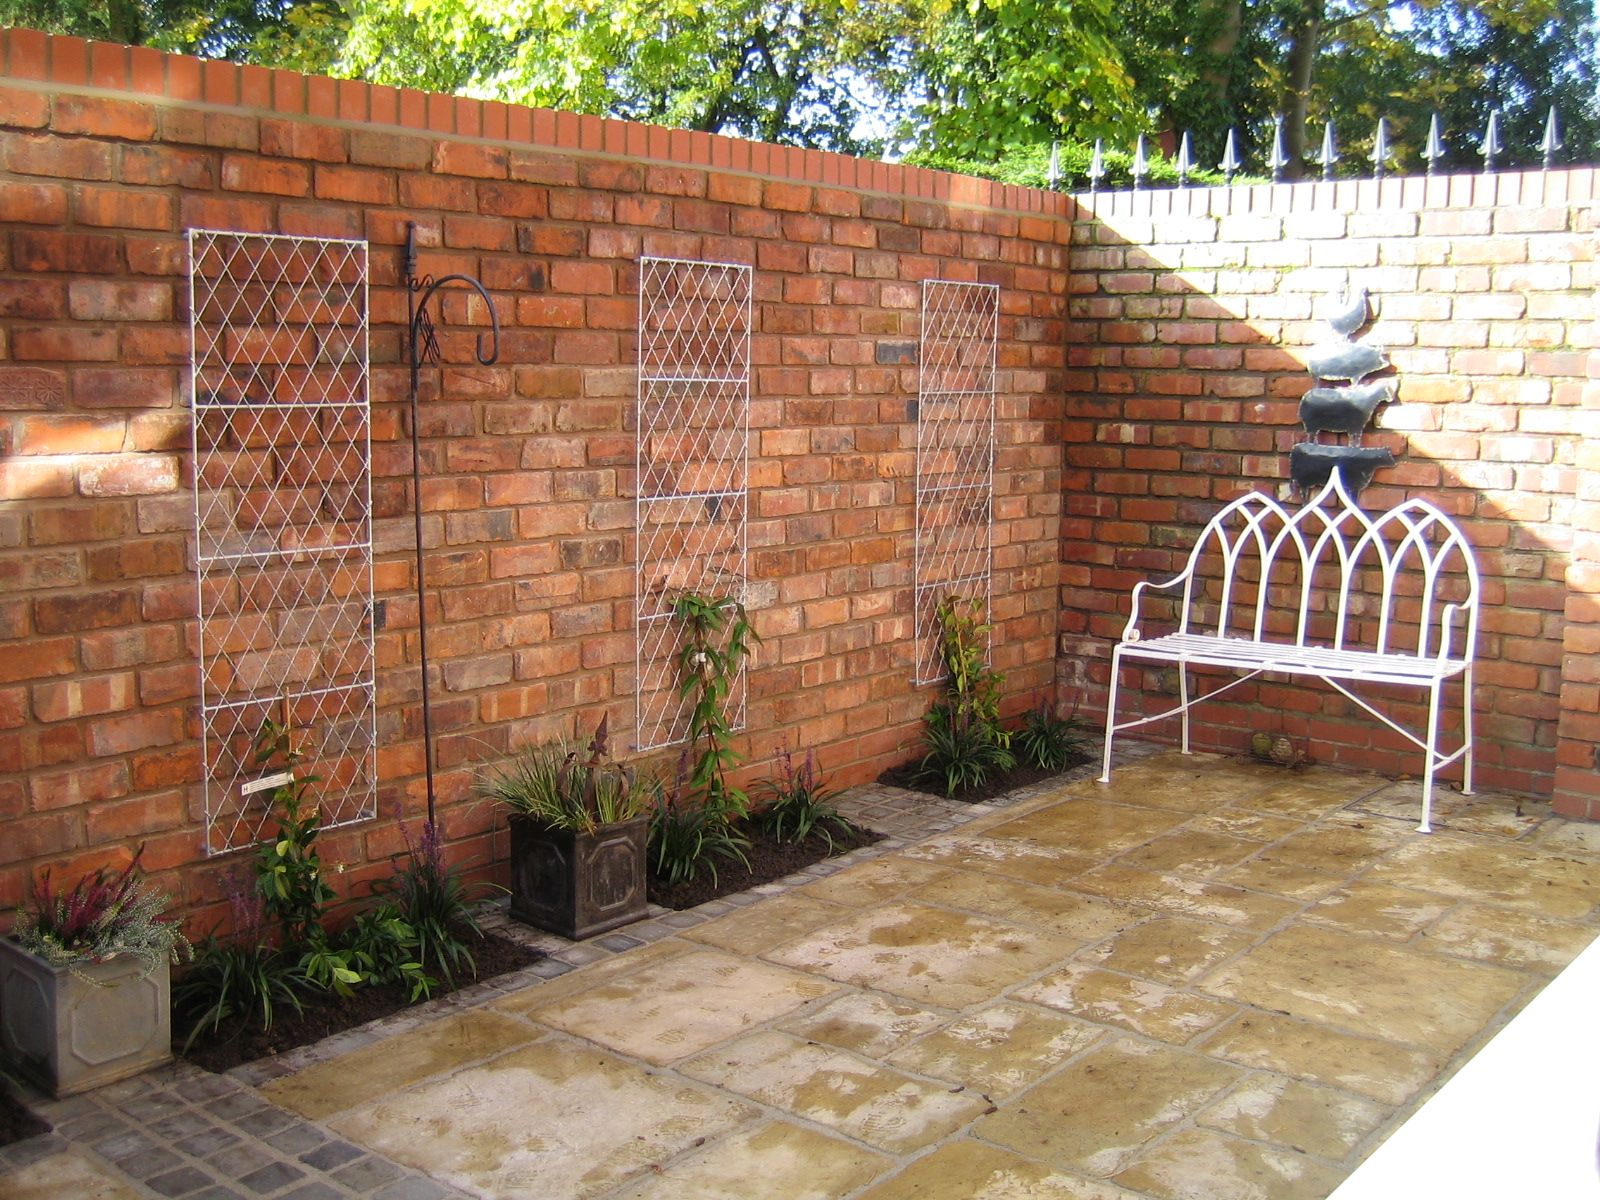 📌 25 Best Ideas About Brick Courtyard On Pinterest Small Brick